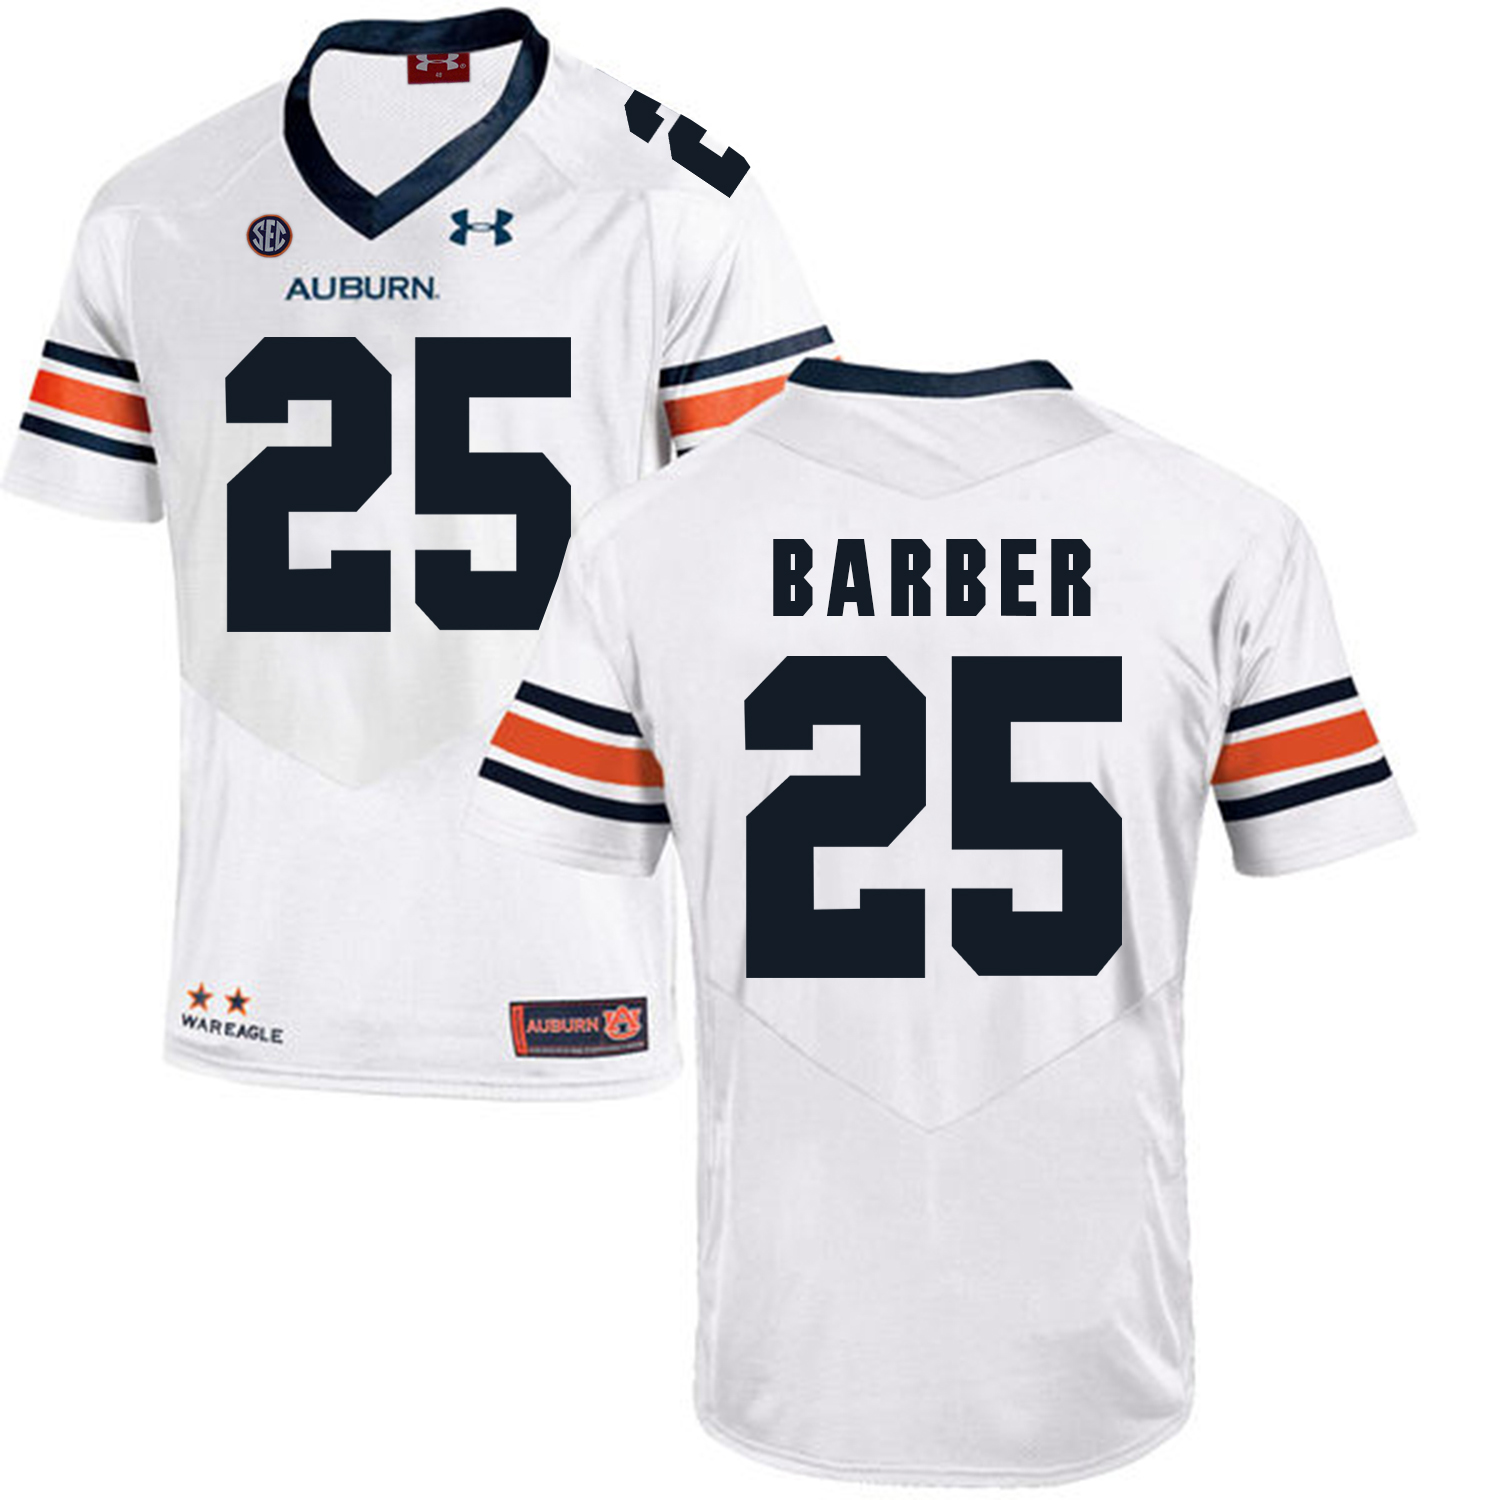 Auburn Tigers 25 Peyton Barber White College Football Jersey